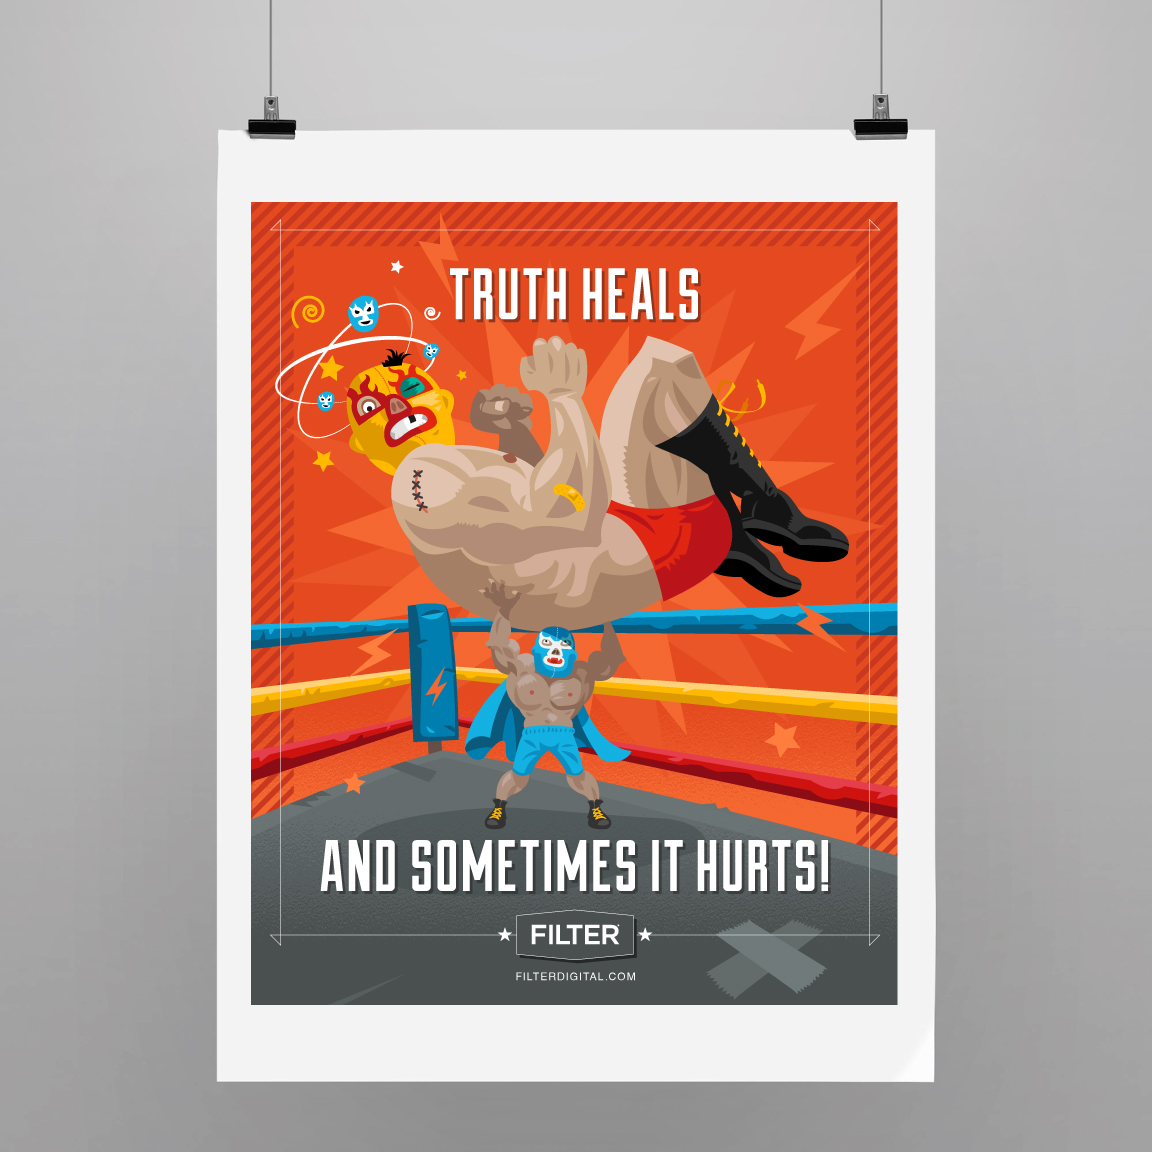 Truth heals and sometimes it hurts!